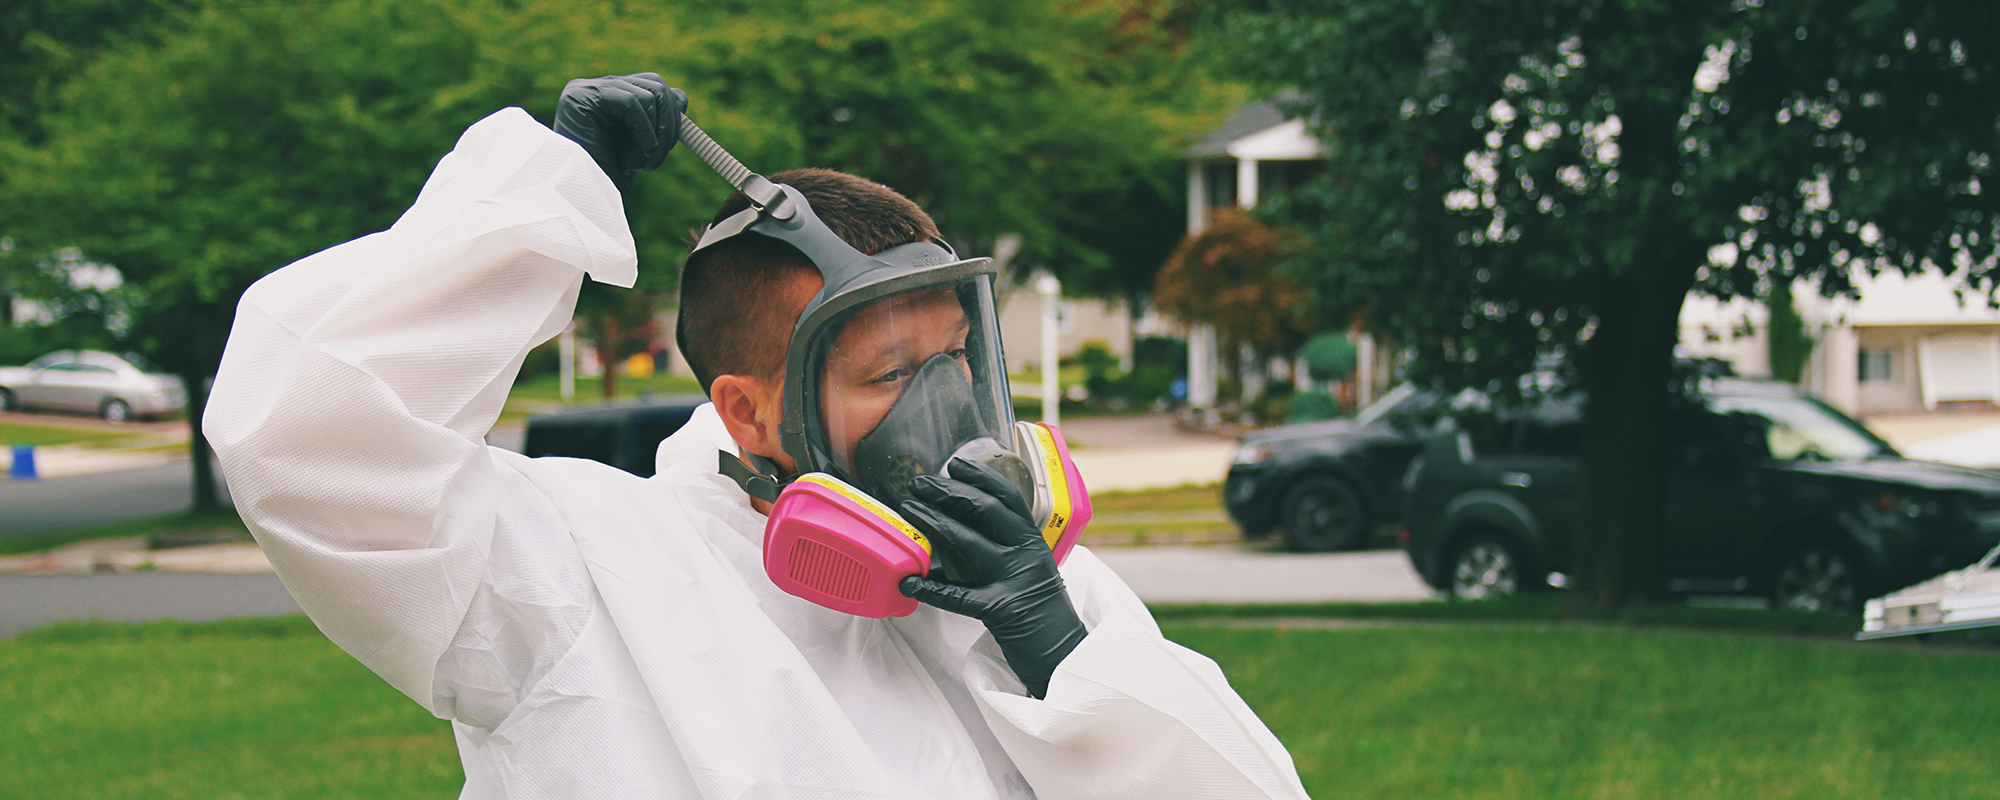 mold-remediation-monroe-nj